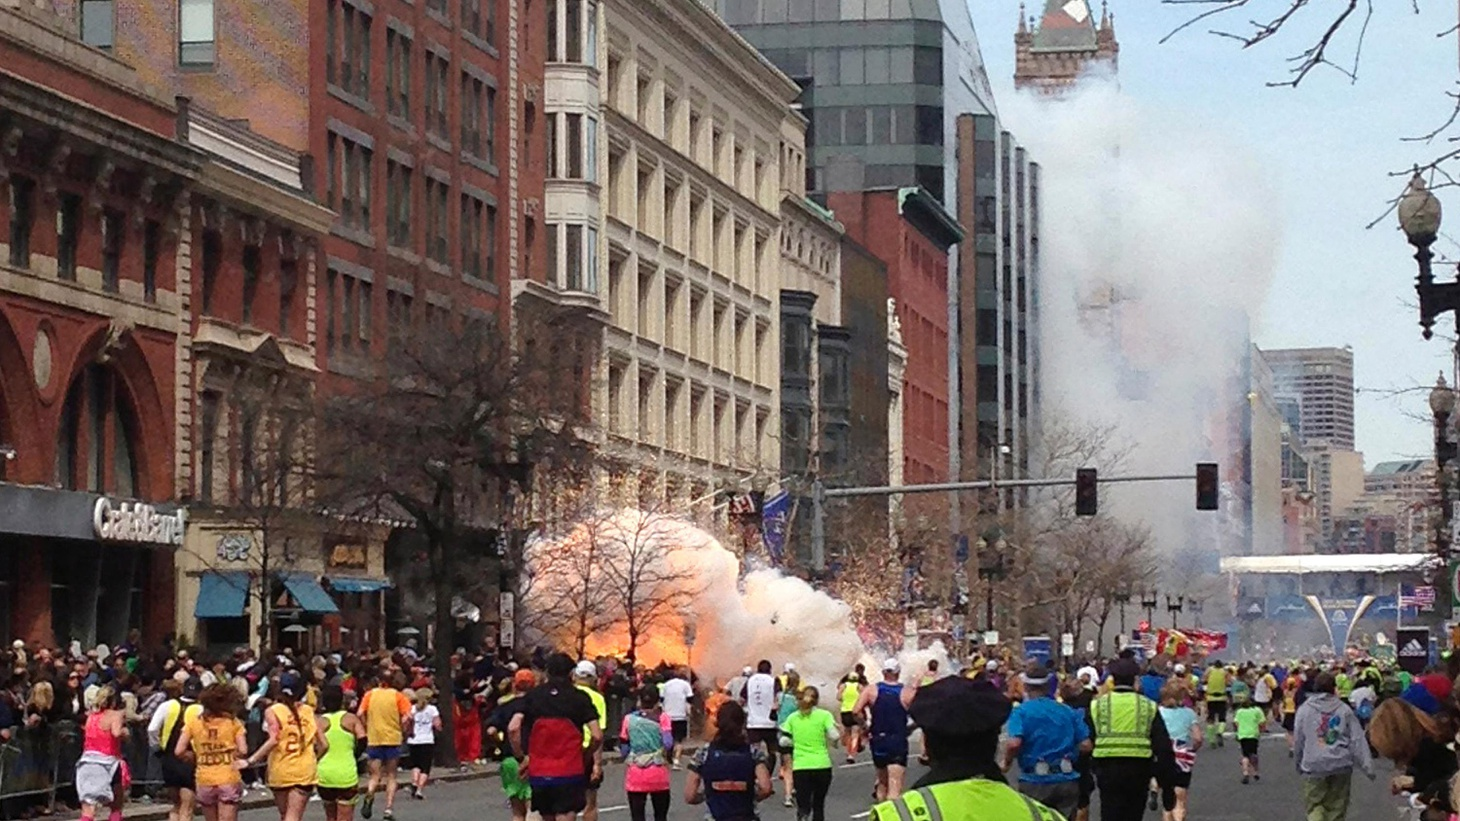 """At least 3 are dead and 170 wounded in yesterday's """"terrorist"""" bombings at the Boston Marathon. We update the story, including the impact on this historic American city."""